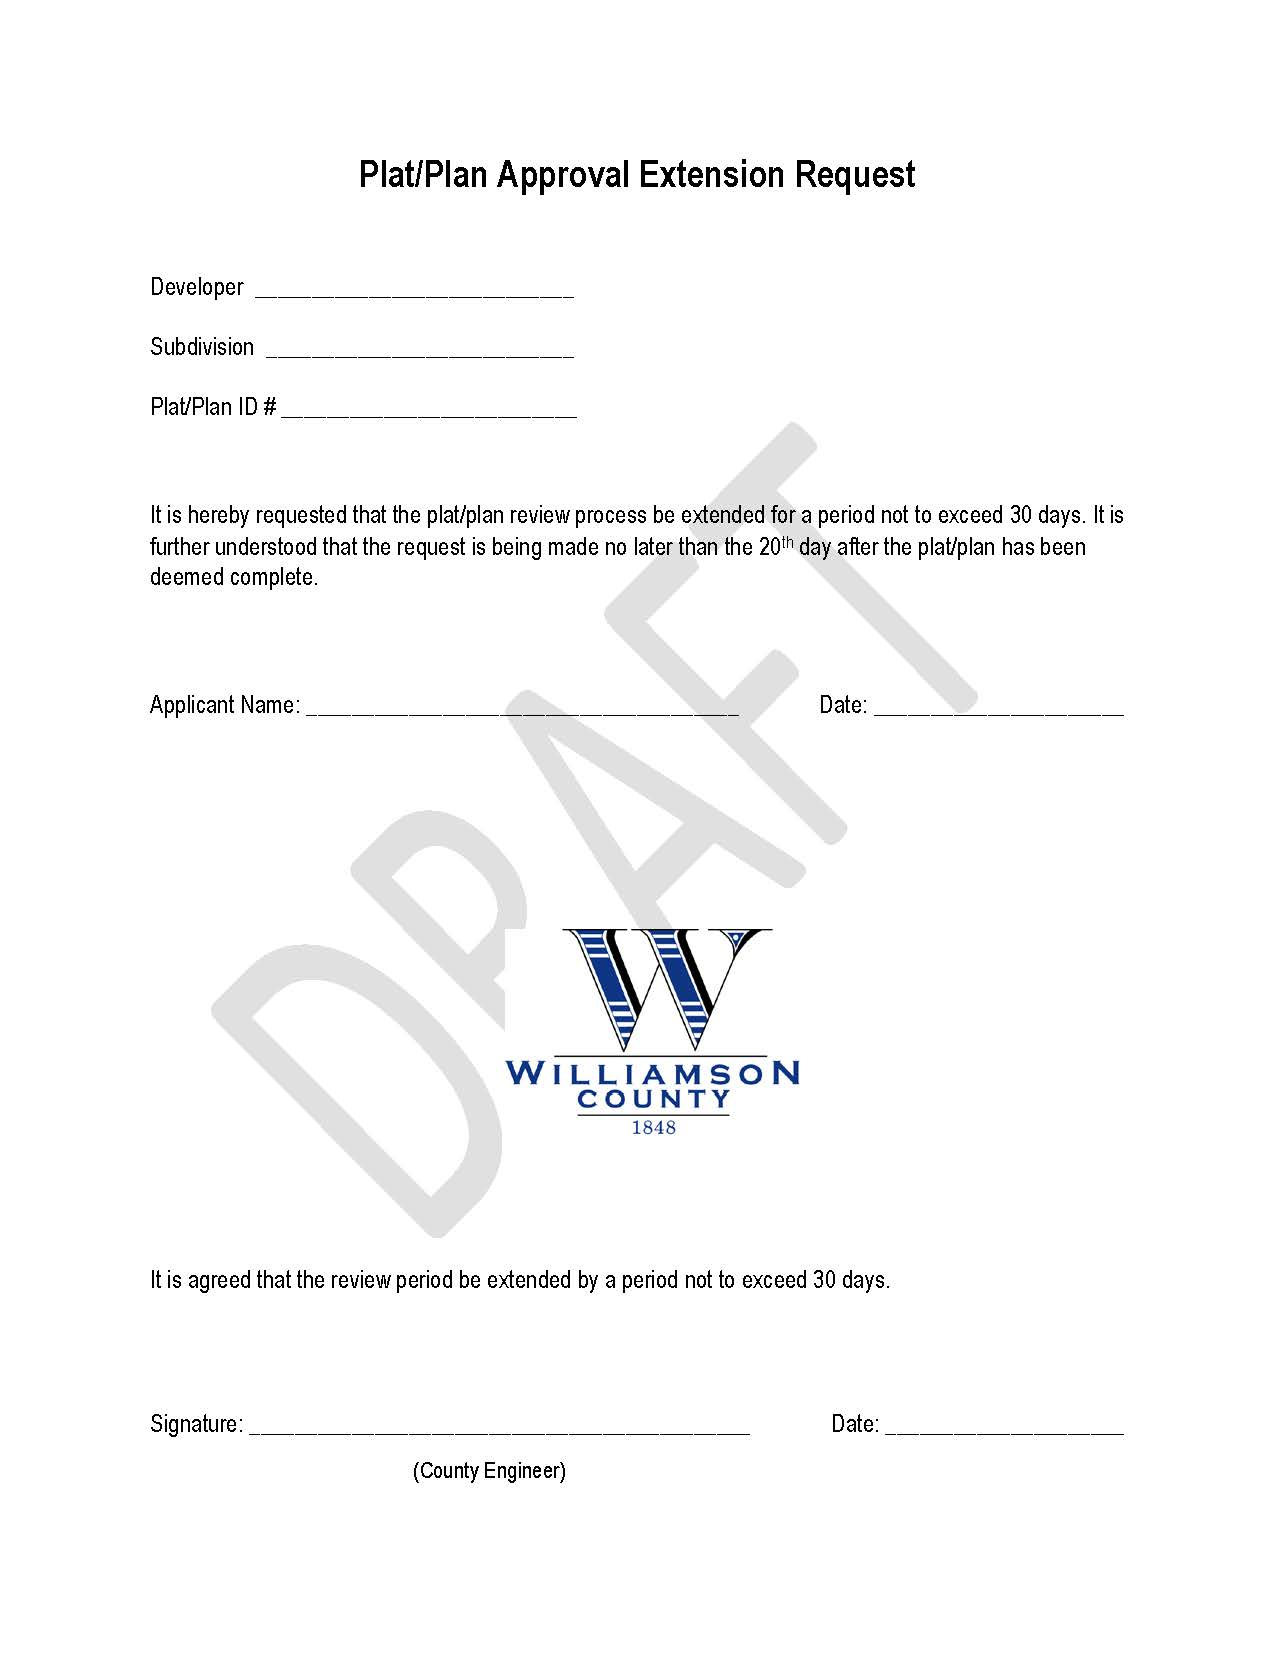 Extension Request Form